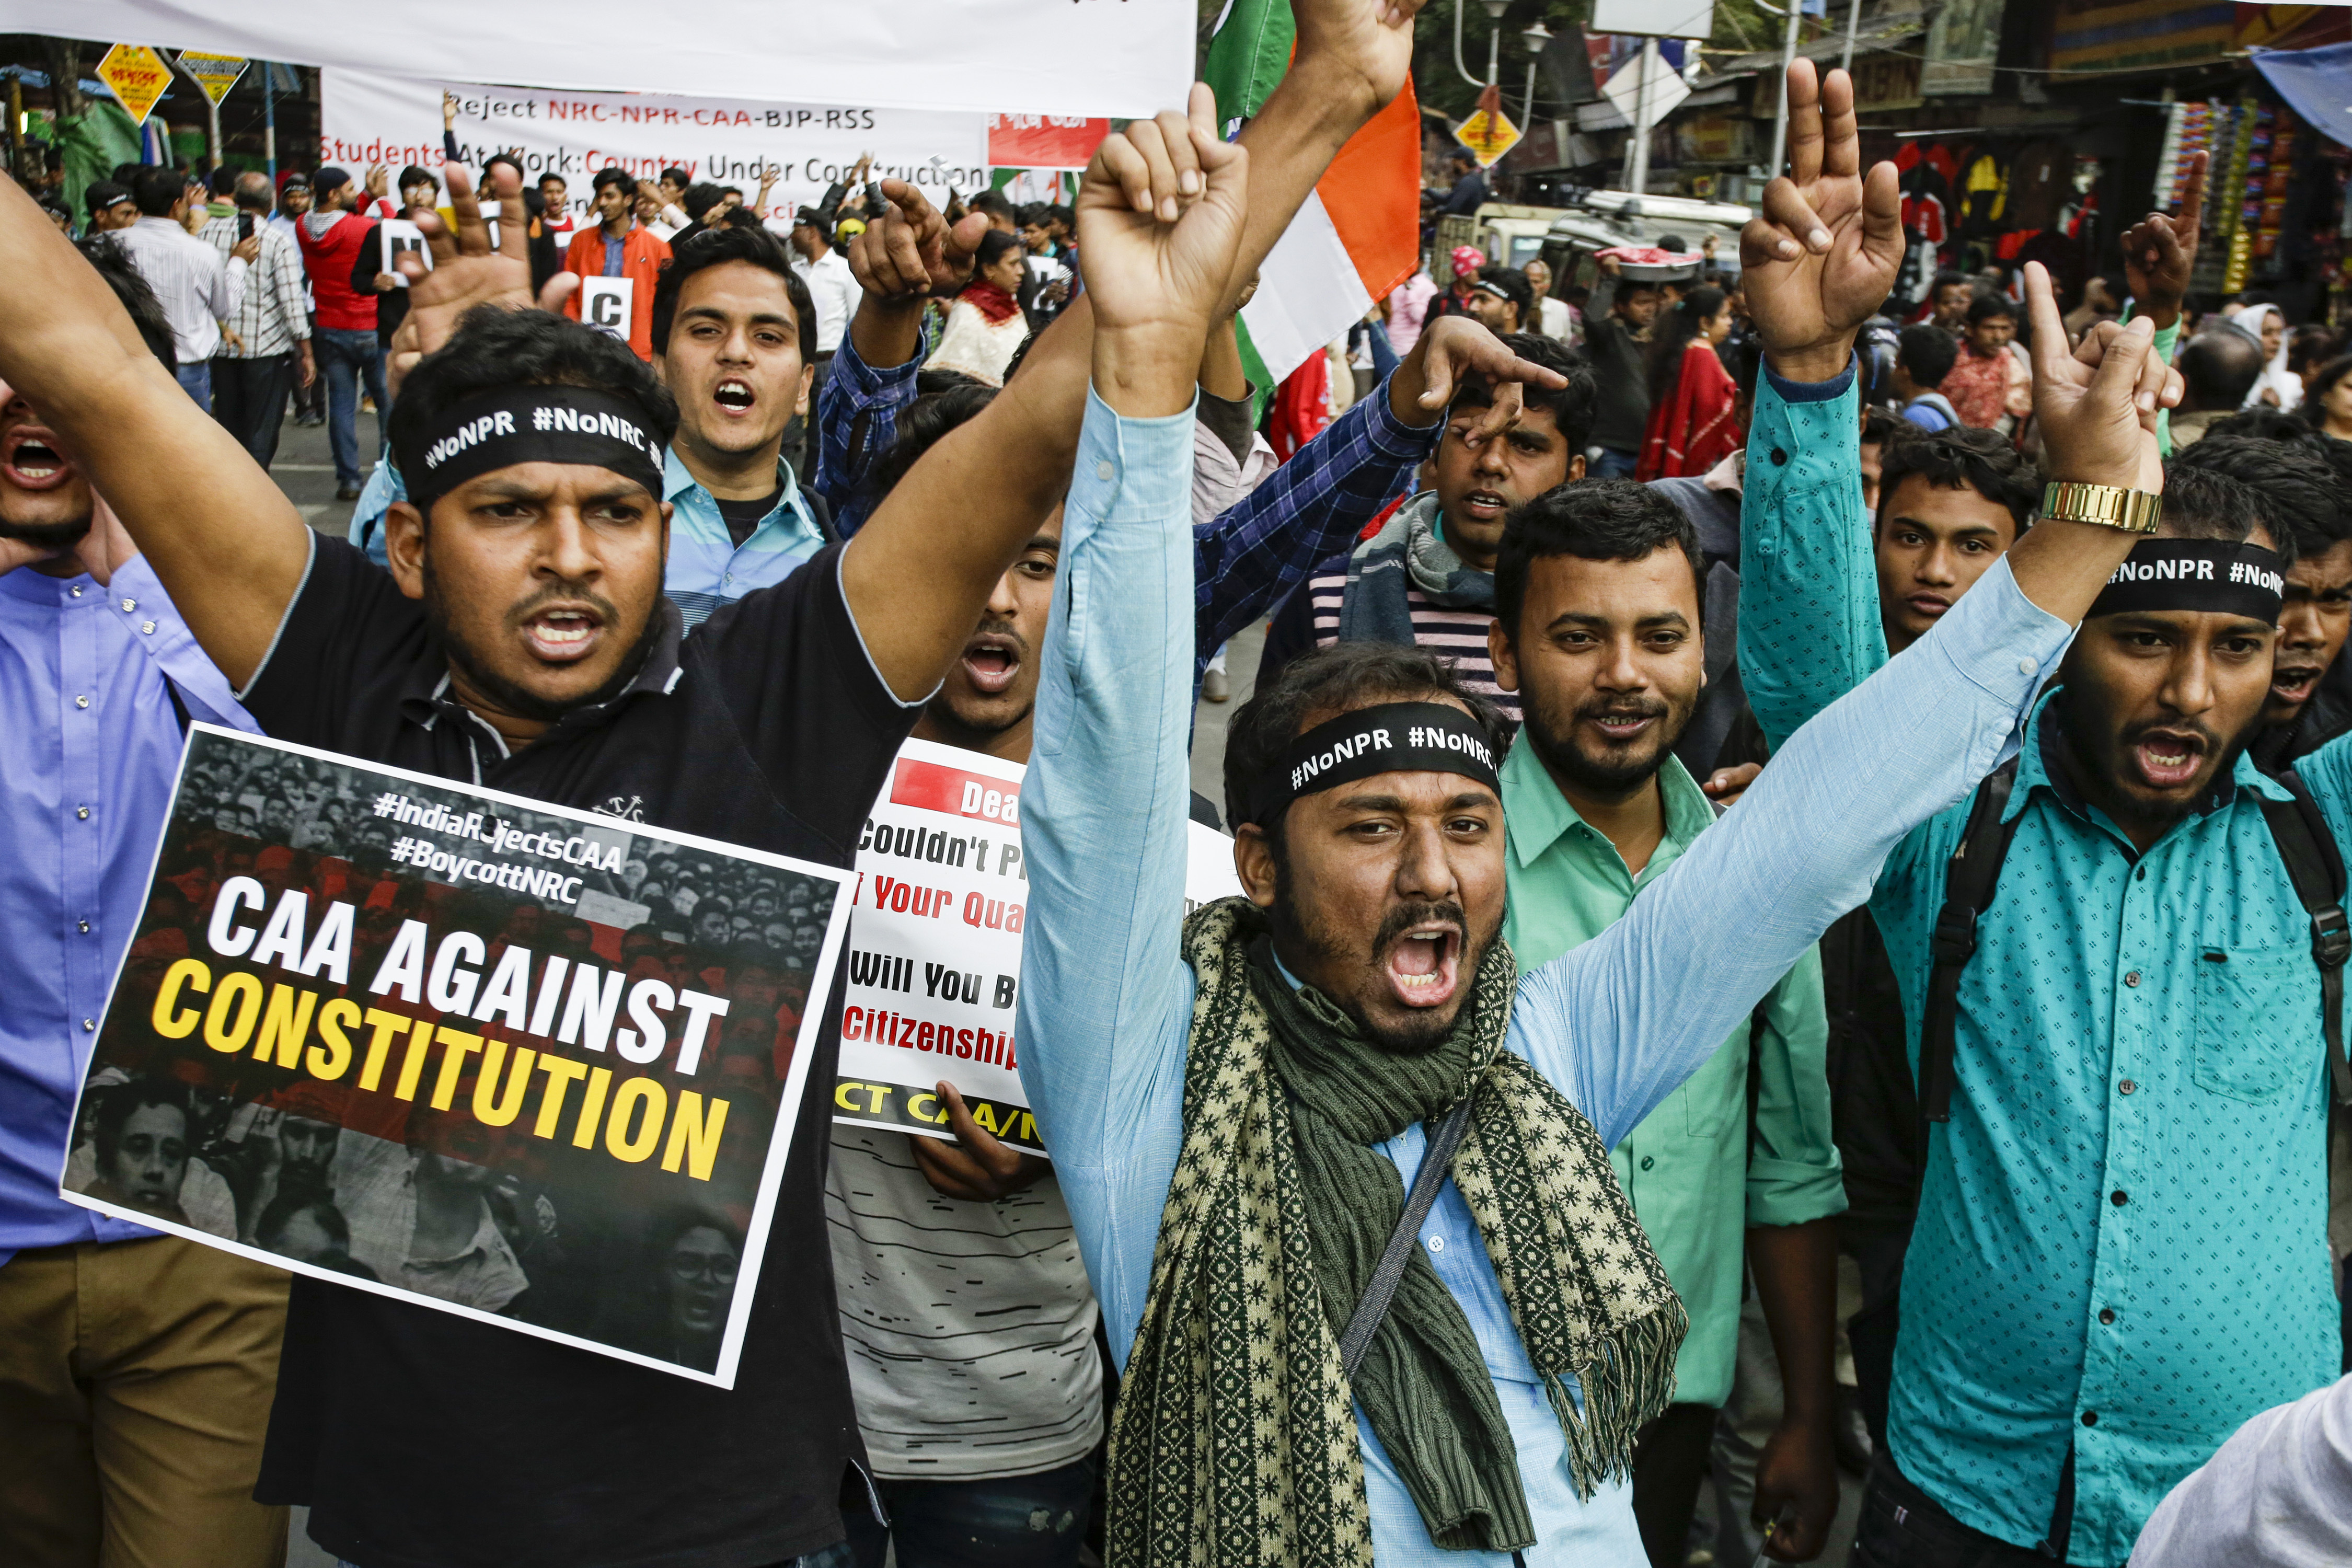 Students of different universities shout slogans as they protest the Citizenship law in Calcutta on Monday.